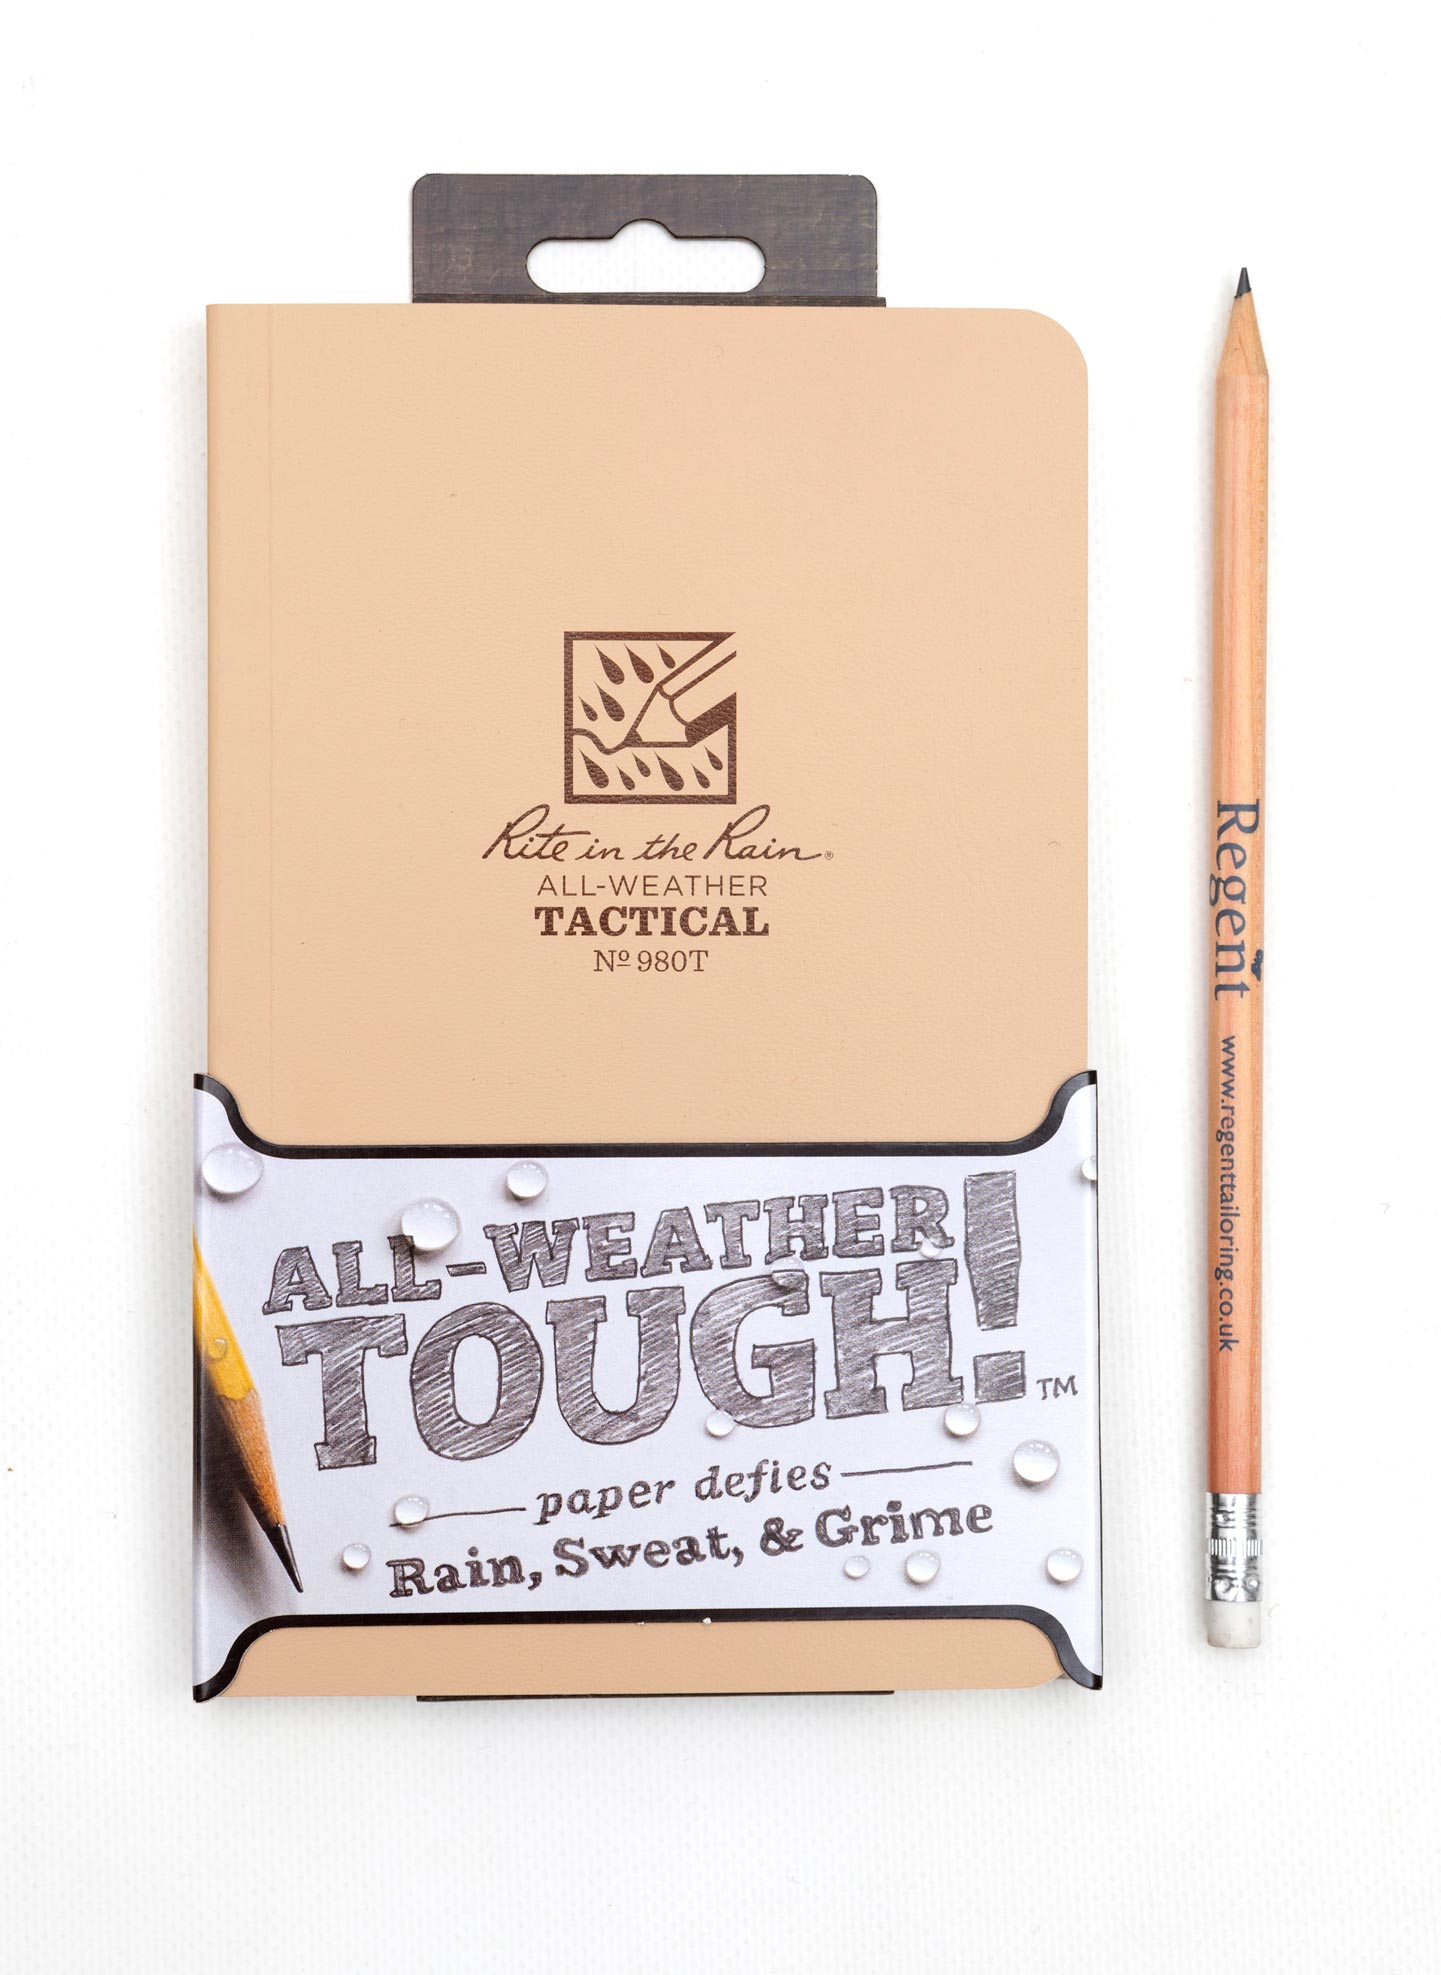 Rite-In-The-Rain Weatherproof, Waterproof Notebook - Sand - Regent Tailoring